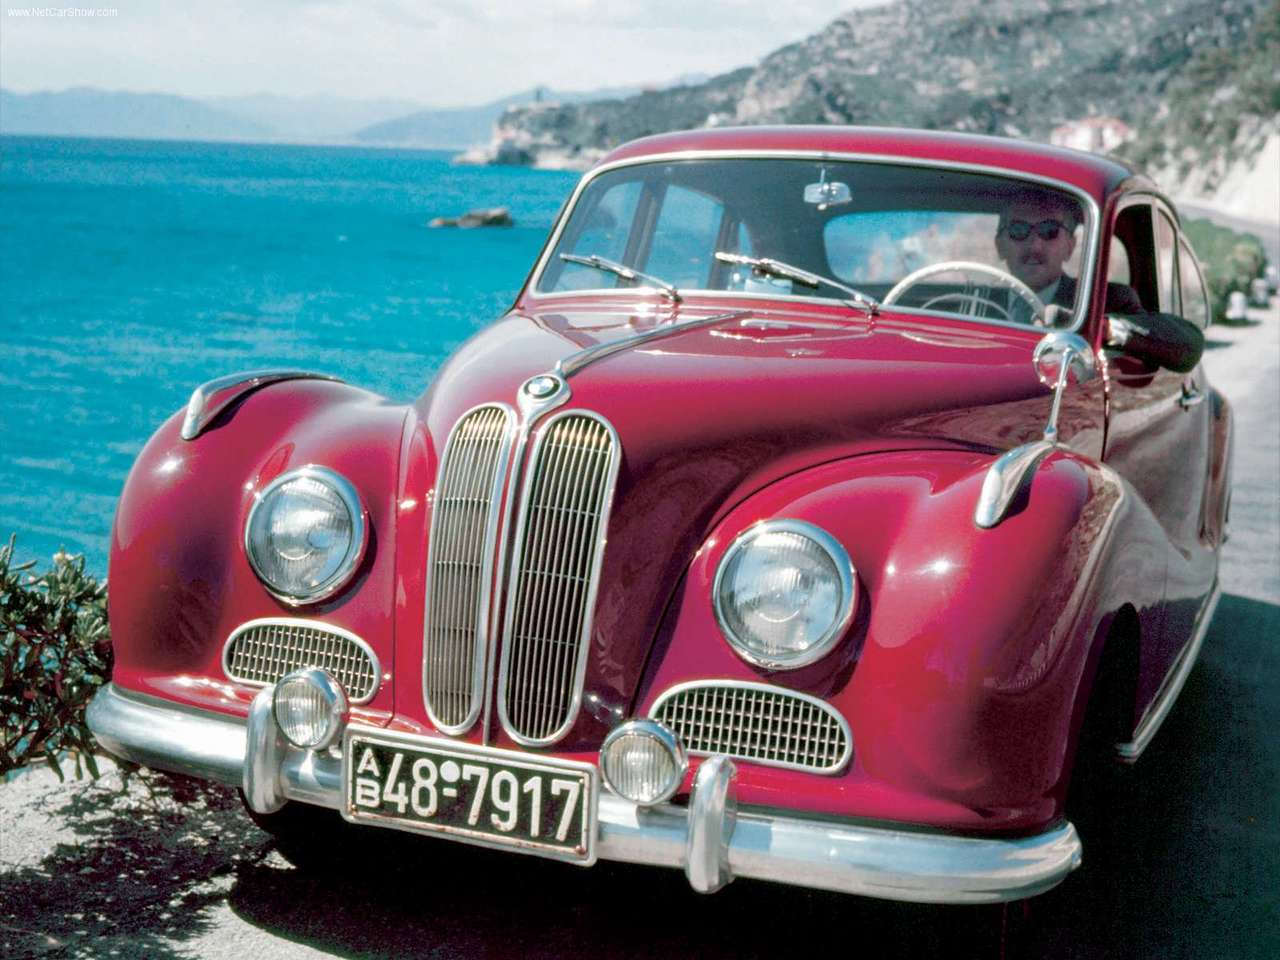 1952 - BMW 501 Wallpapers For PC ~ BMW Automobiles